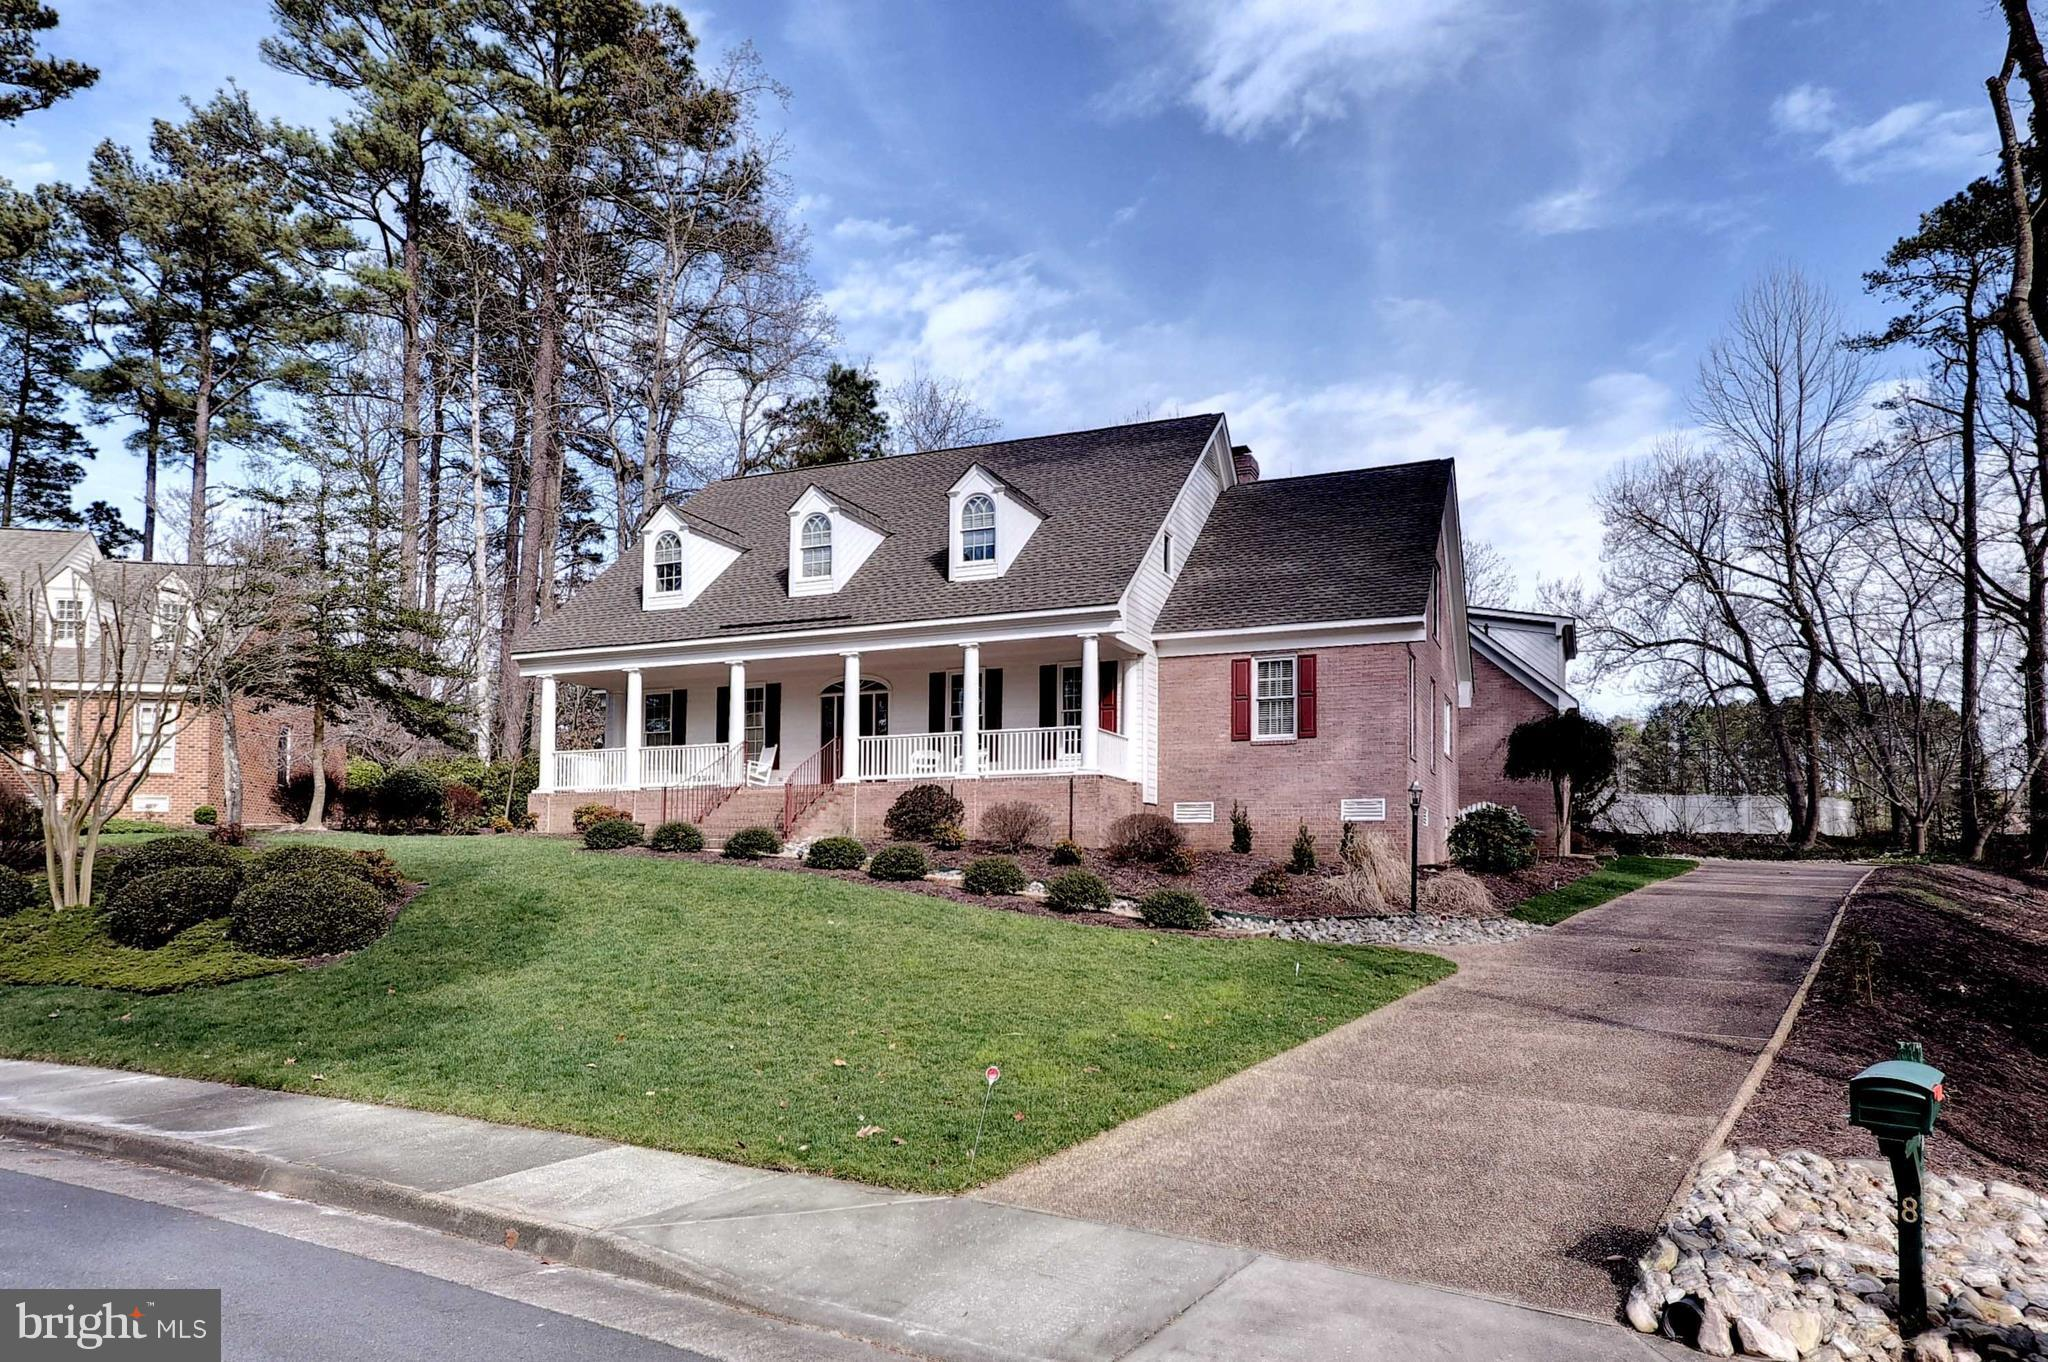 8 WHITBY COURT, WILLIAMSBURG, VA 23185